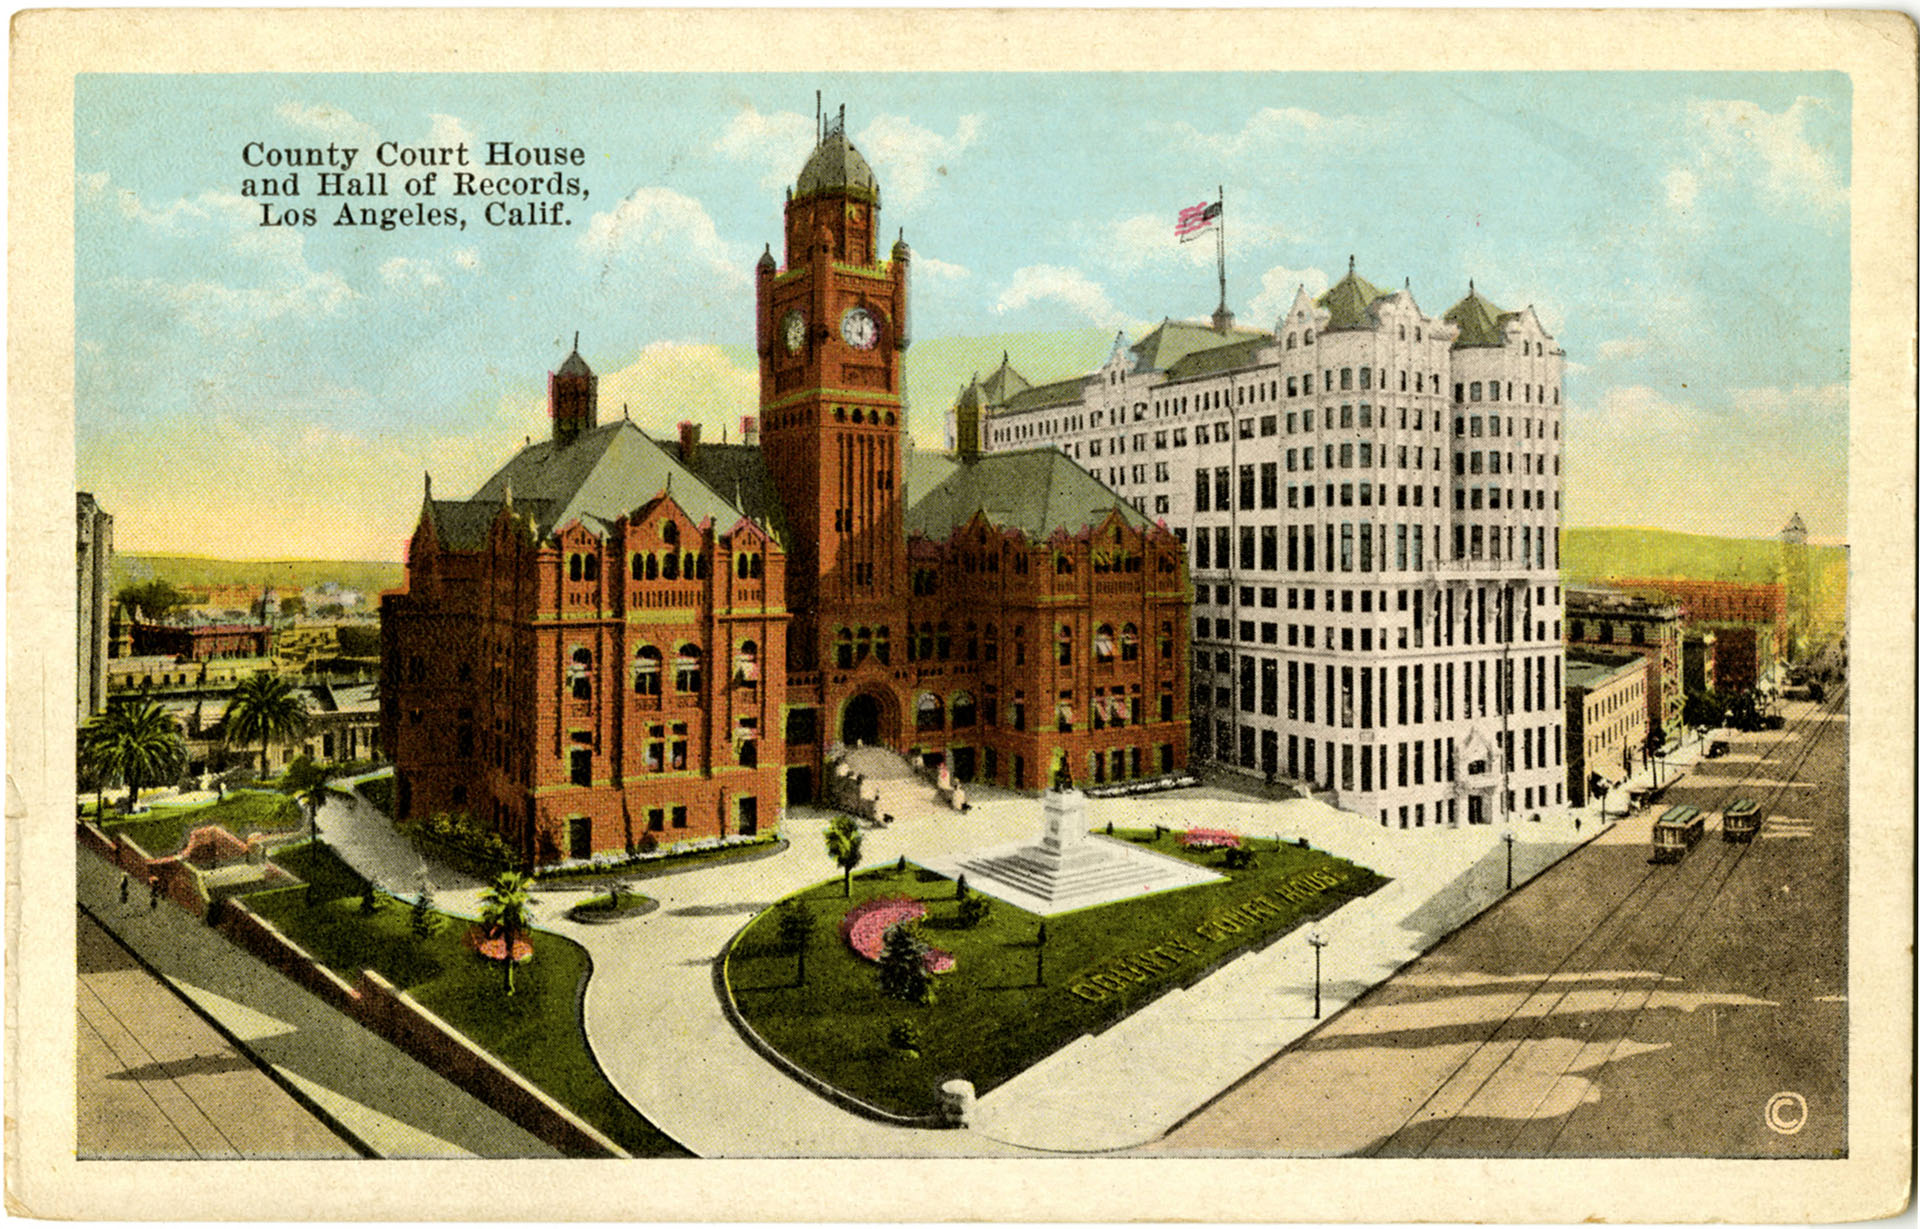 County Courthouse and Hall of Records, Los Angeles, circa 1907